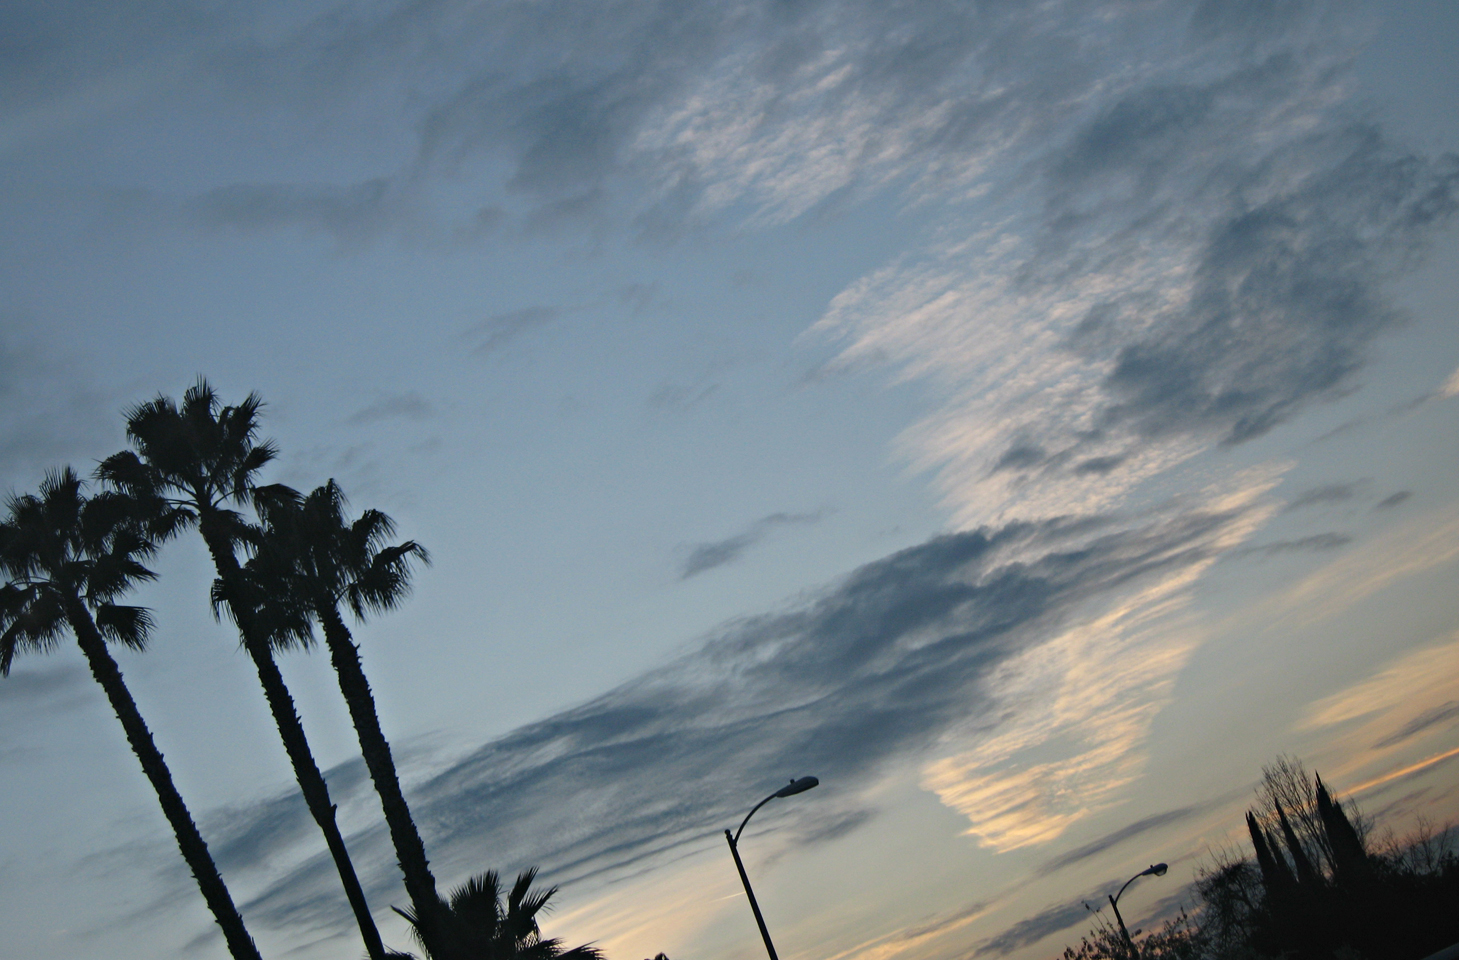 cloudy sky+palm trees+street lights